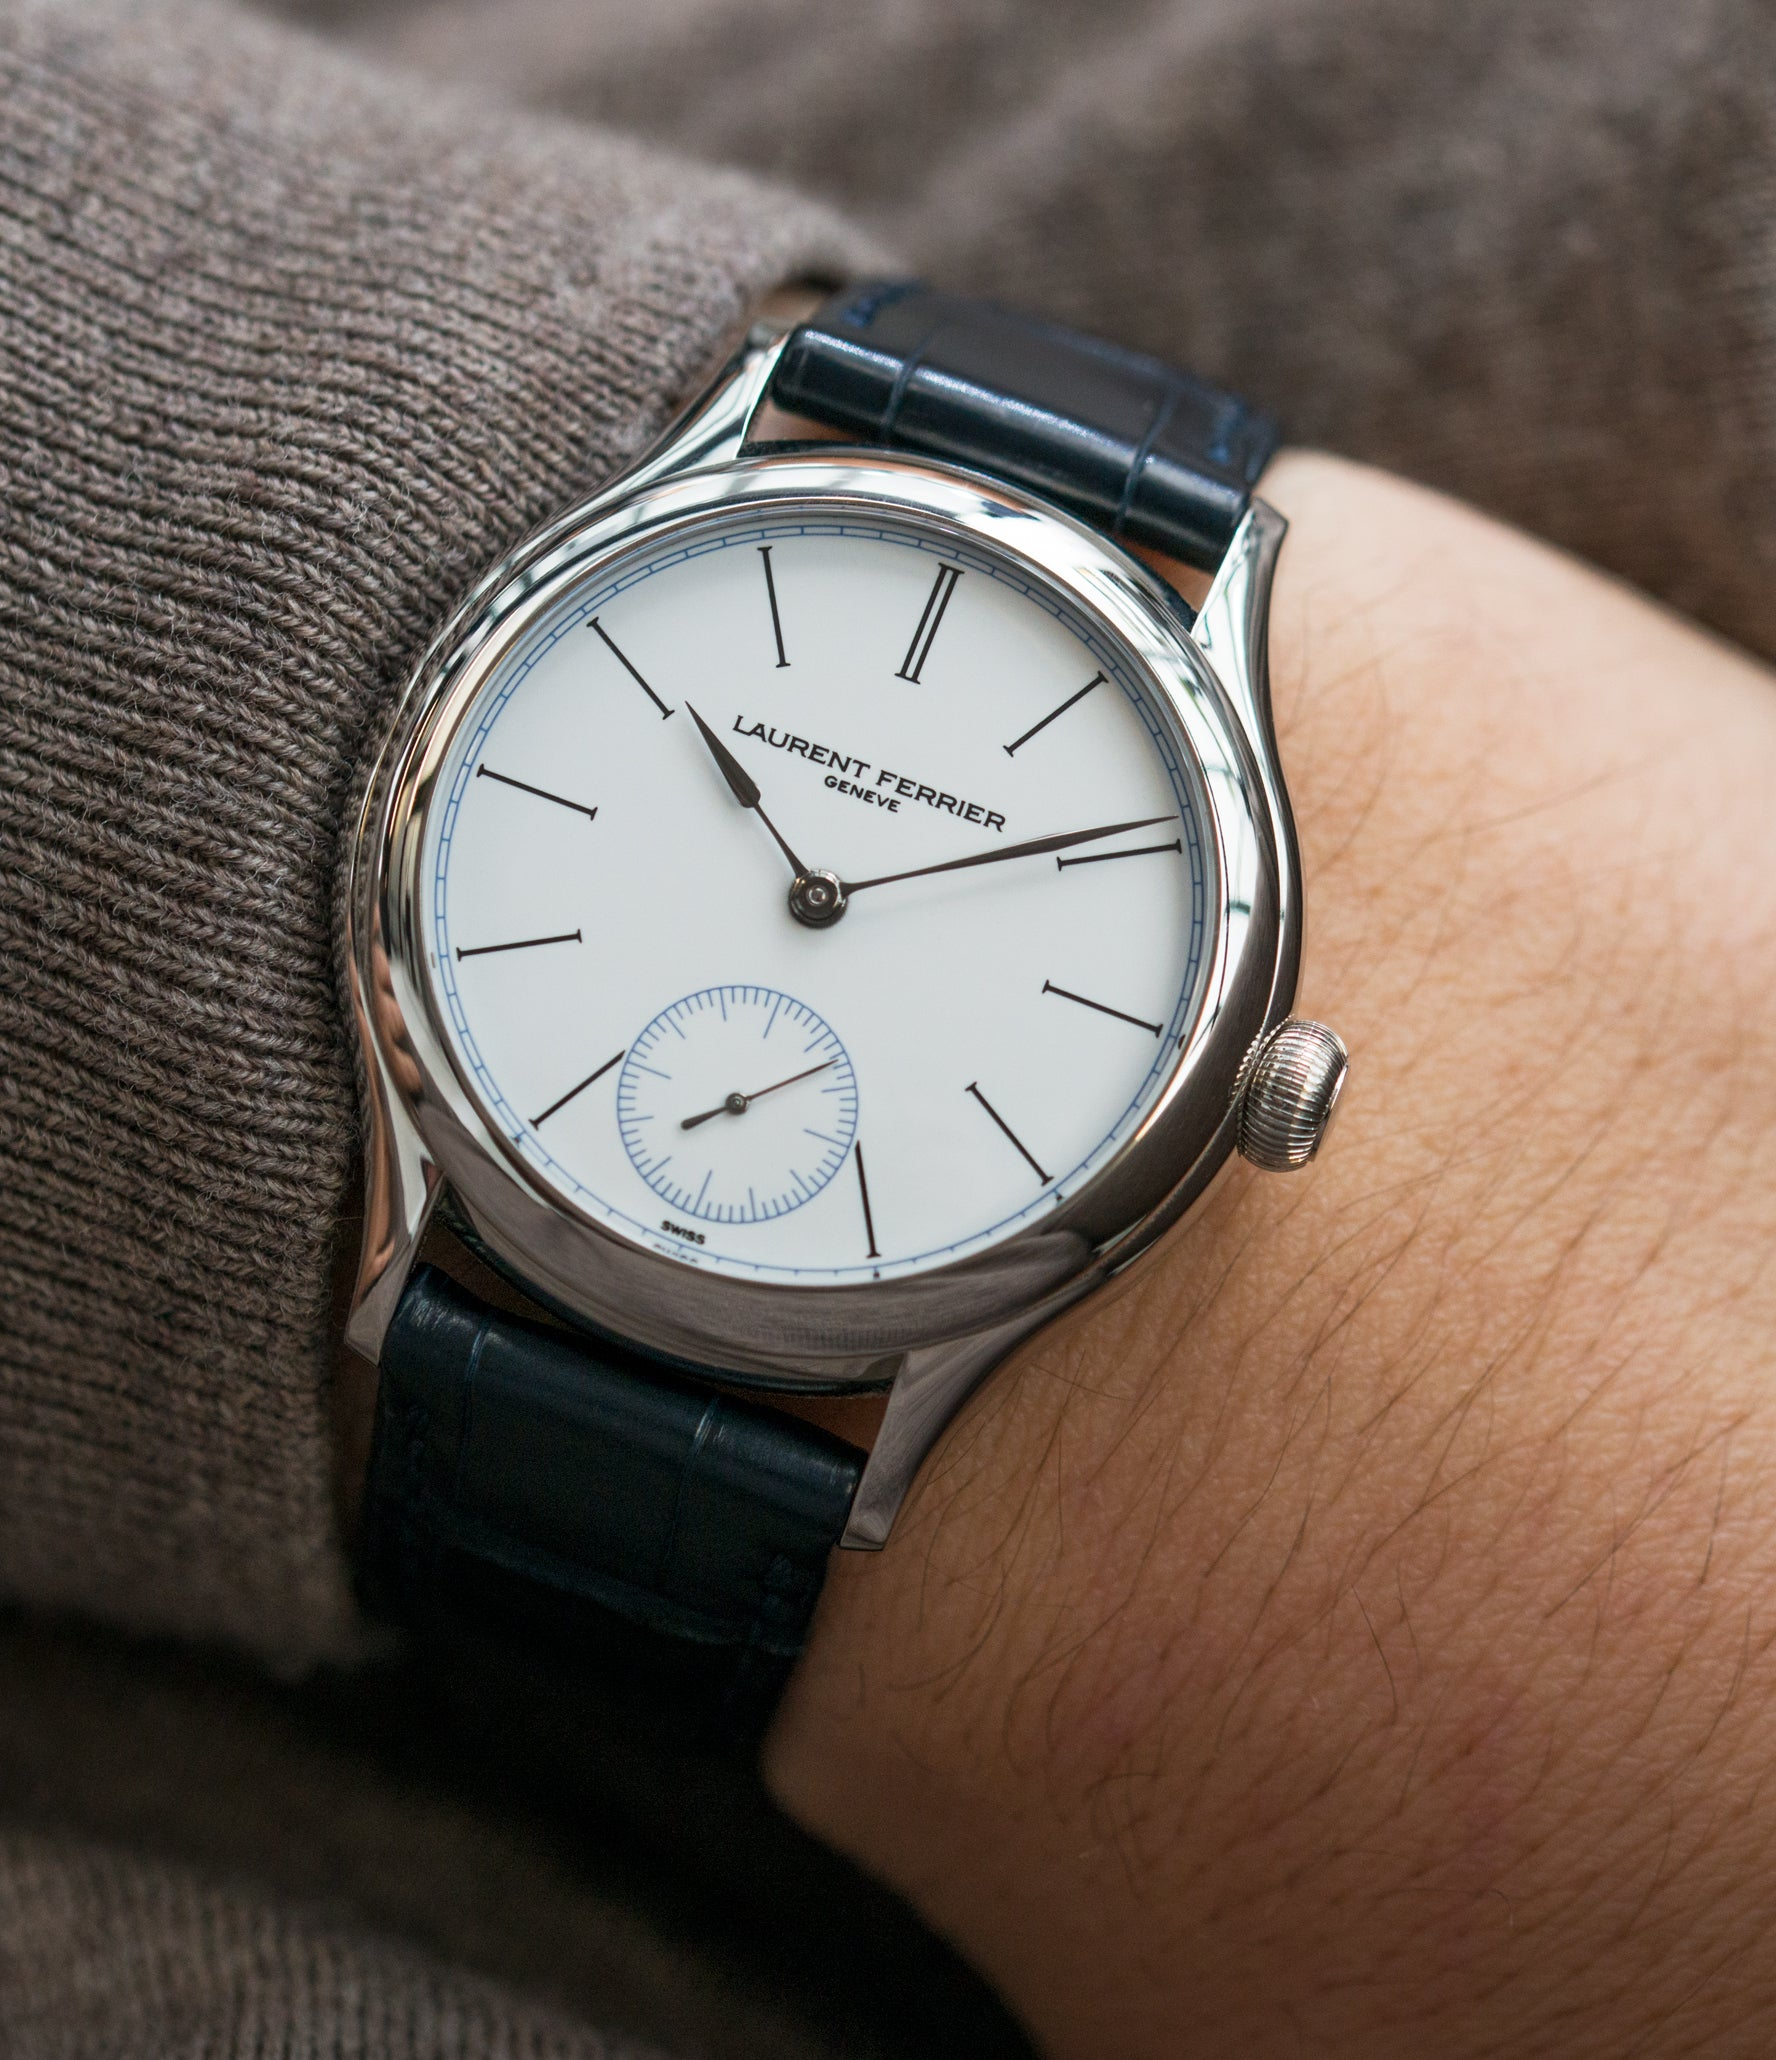 on the wrist Laurent Ferrier Galet Micro-Rotor FBN 230.02 Enamel dial steel watch for sale online at A Collected Man London UK approved seller of independent watchmaker Laurent Ferrier